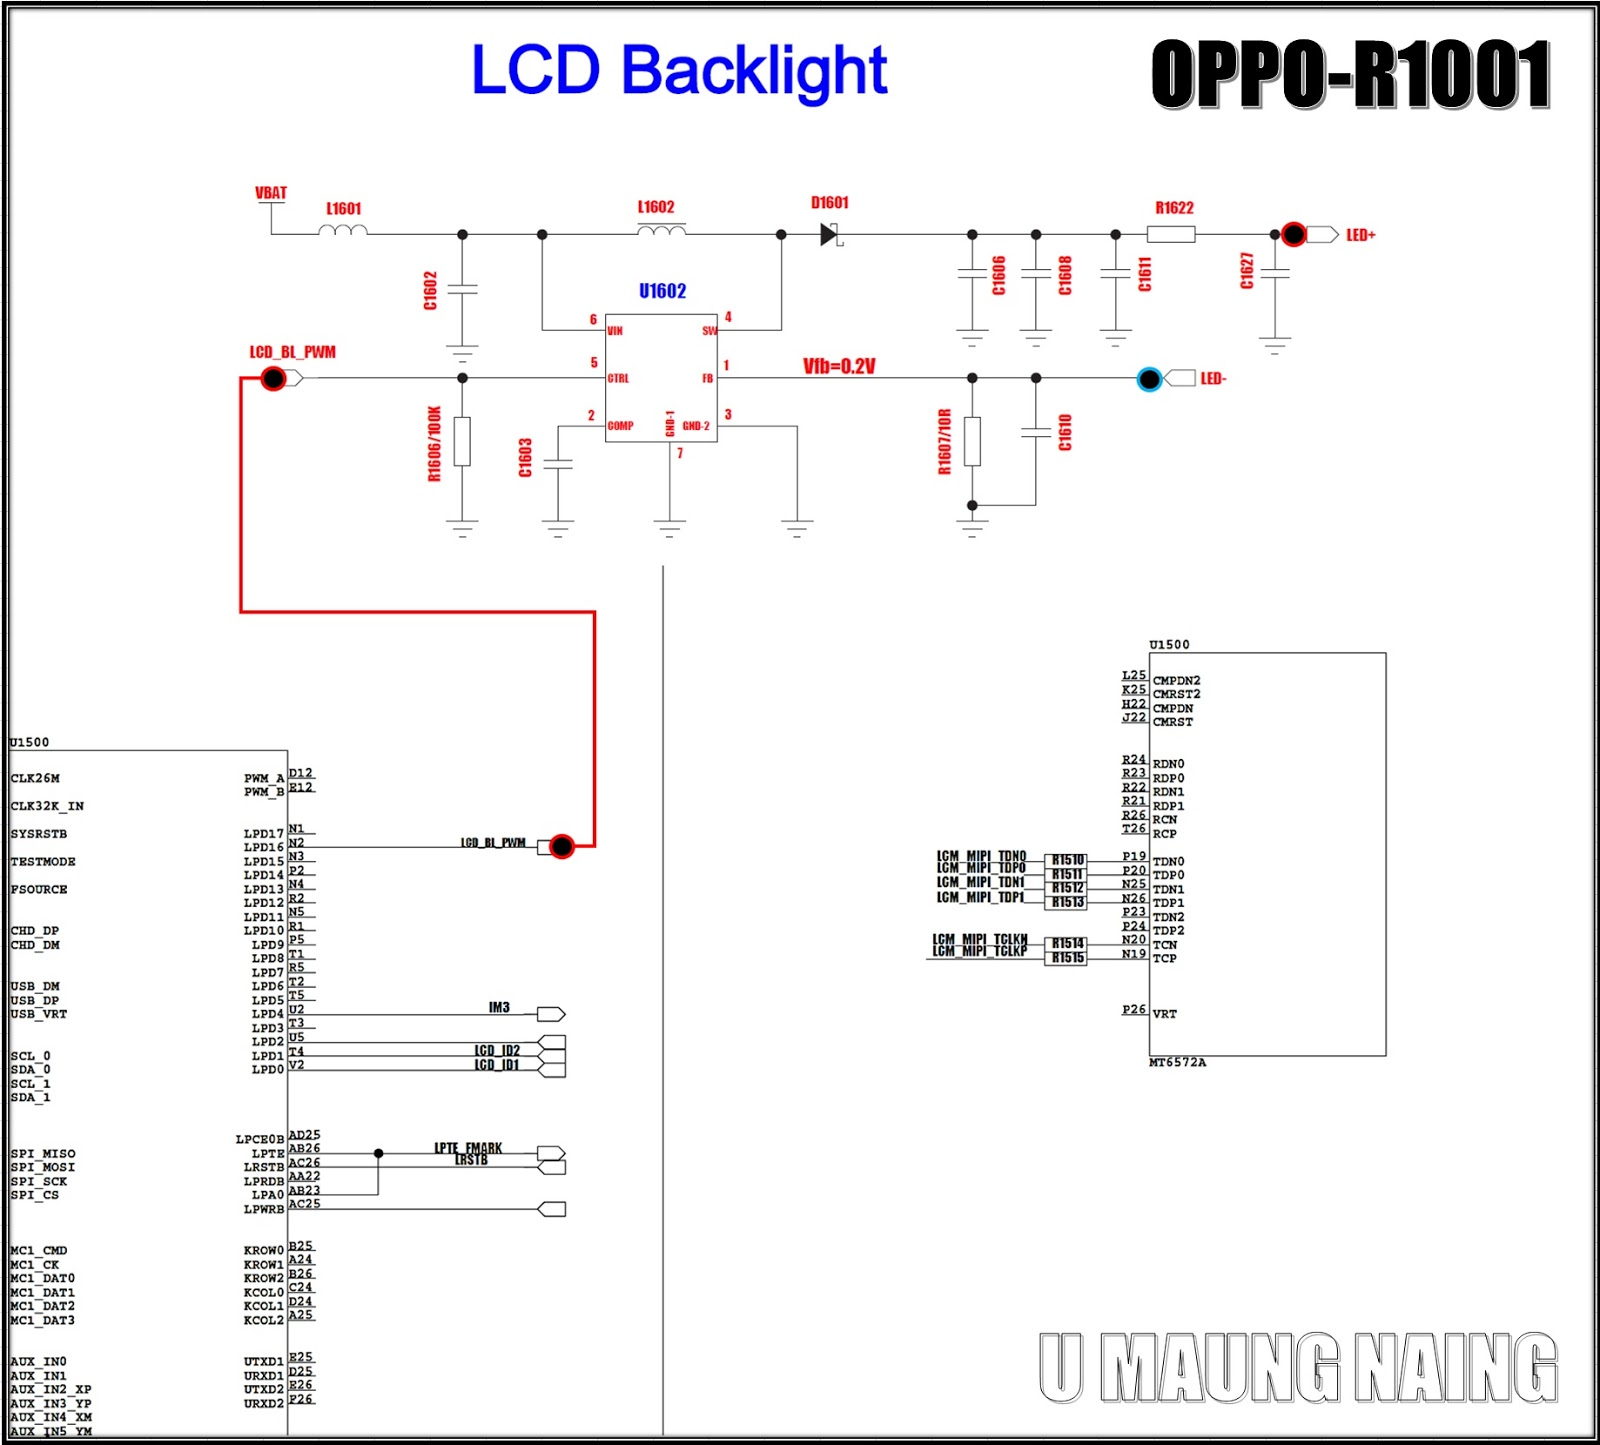 Hardware Hardware  Oppo R1001 Backlight